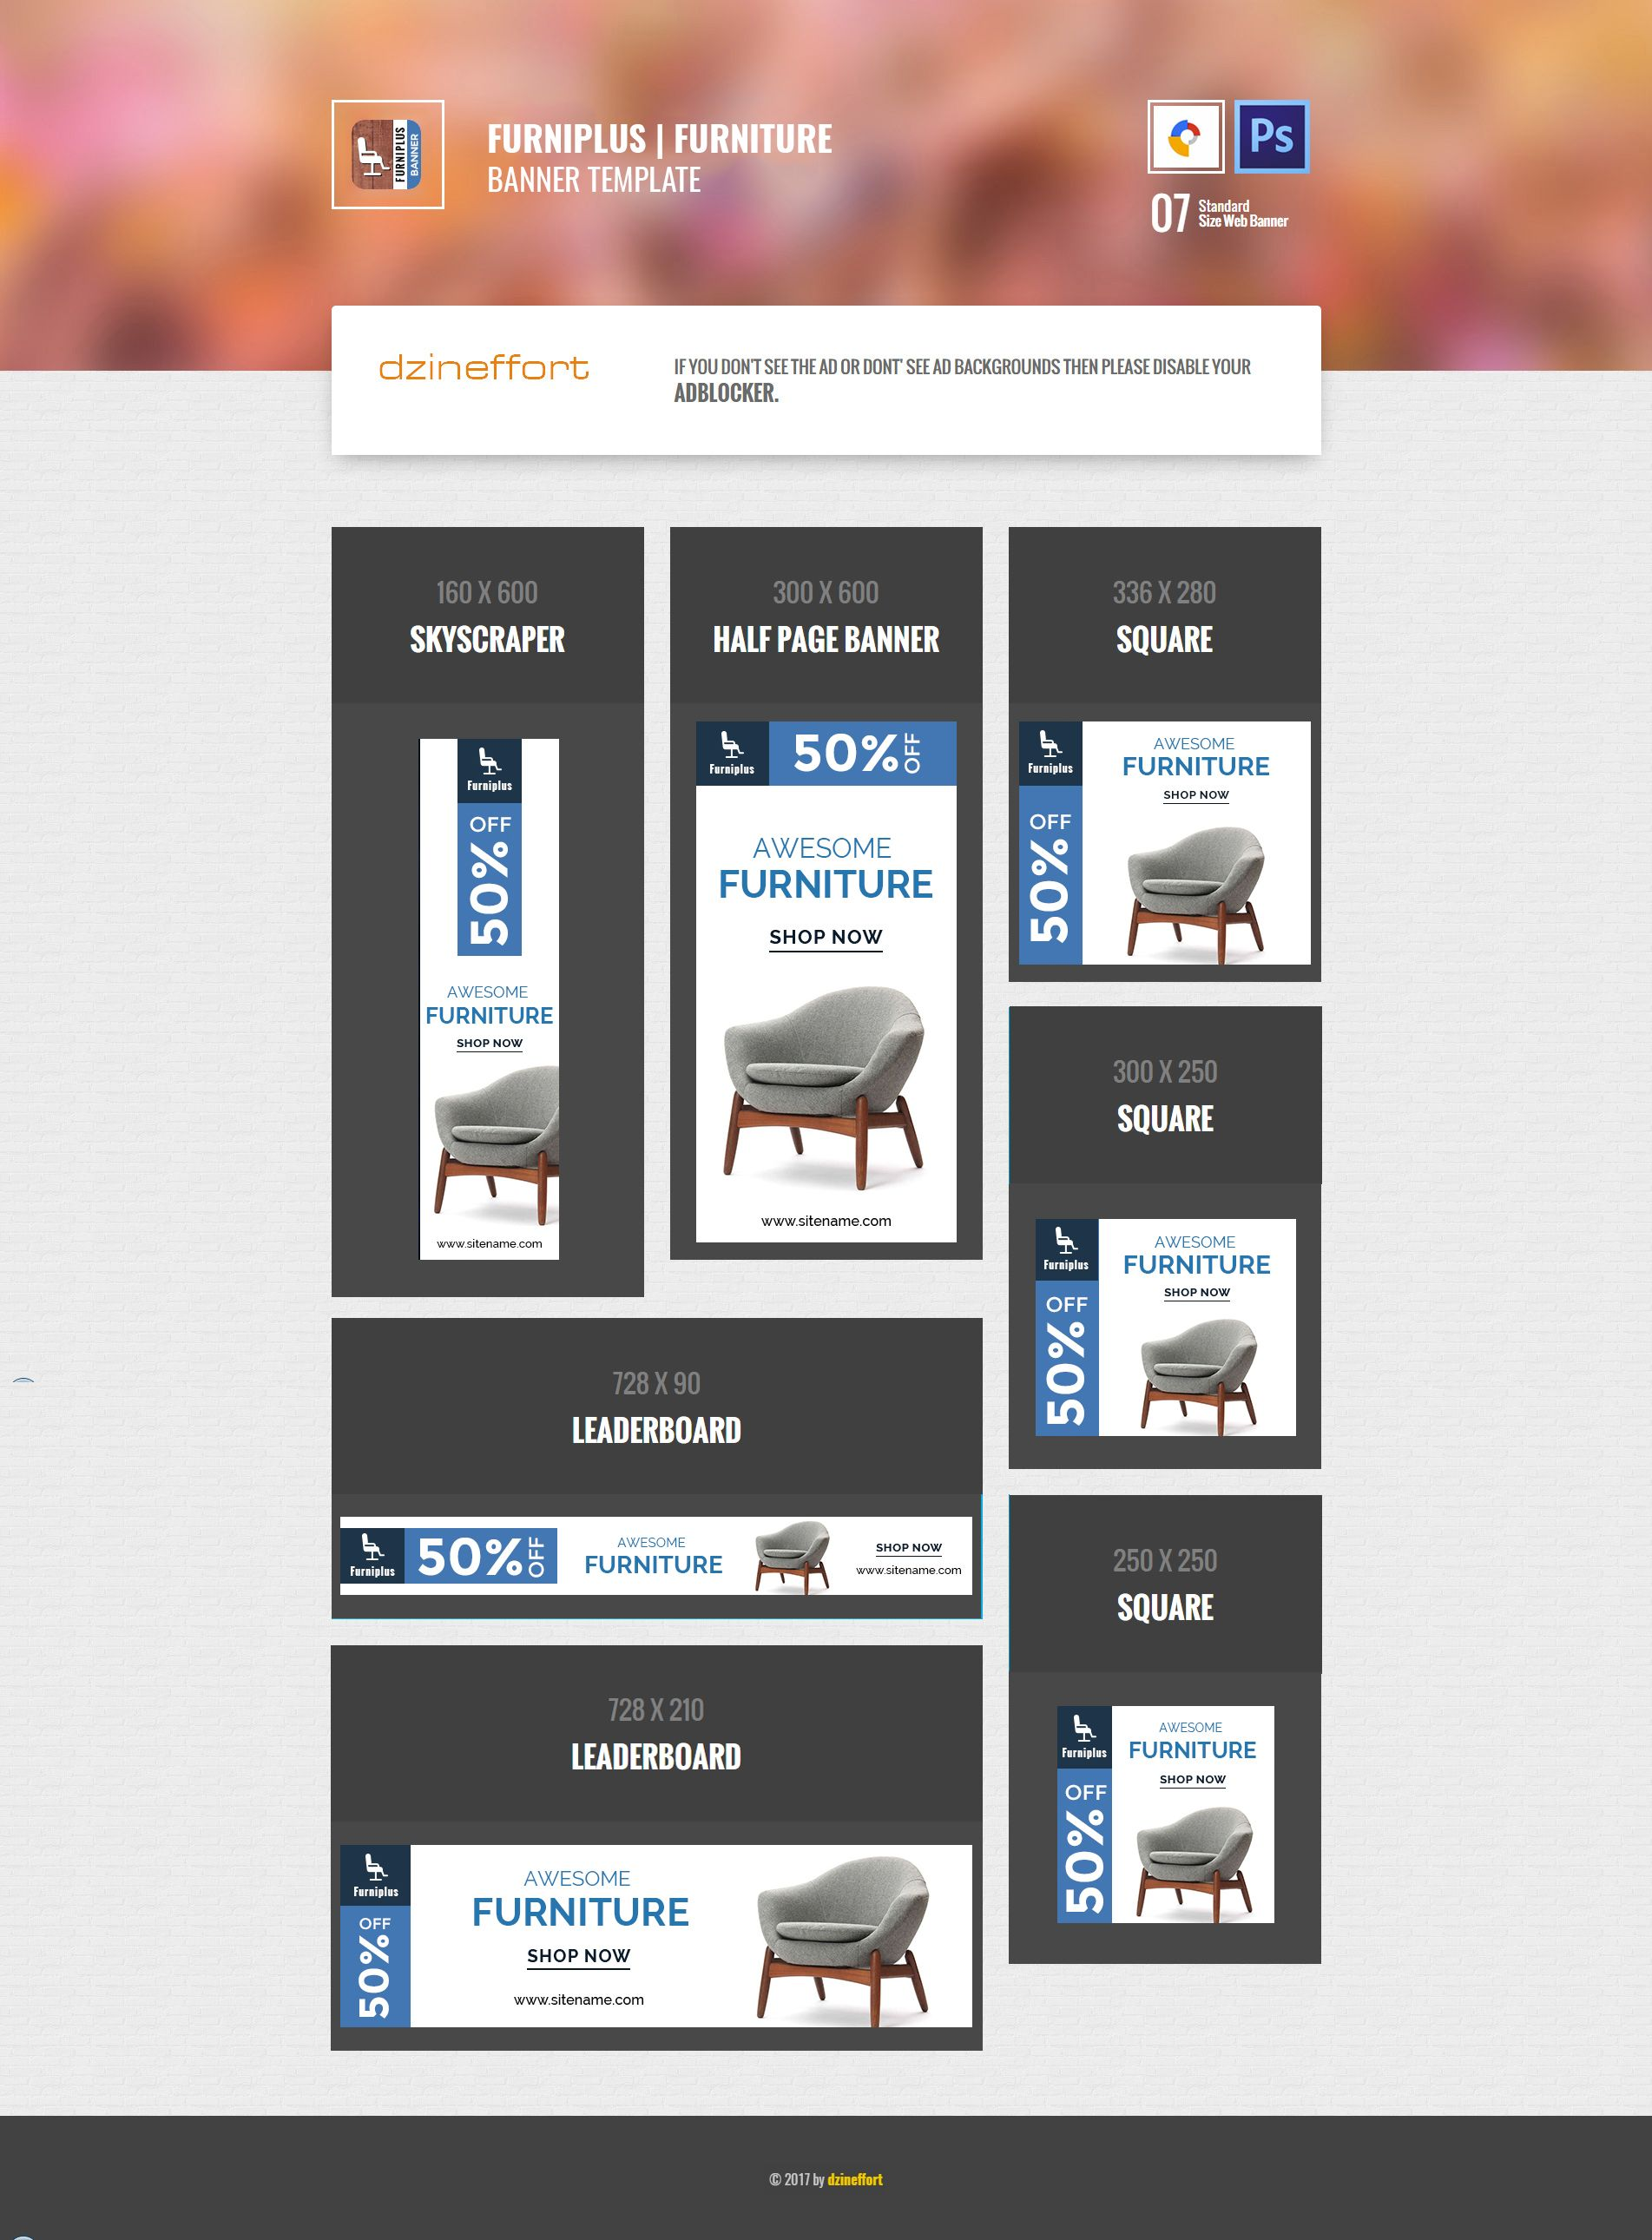 Furniplus | Furniture HTML 5 Animated Google Banner | ad banner ...